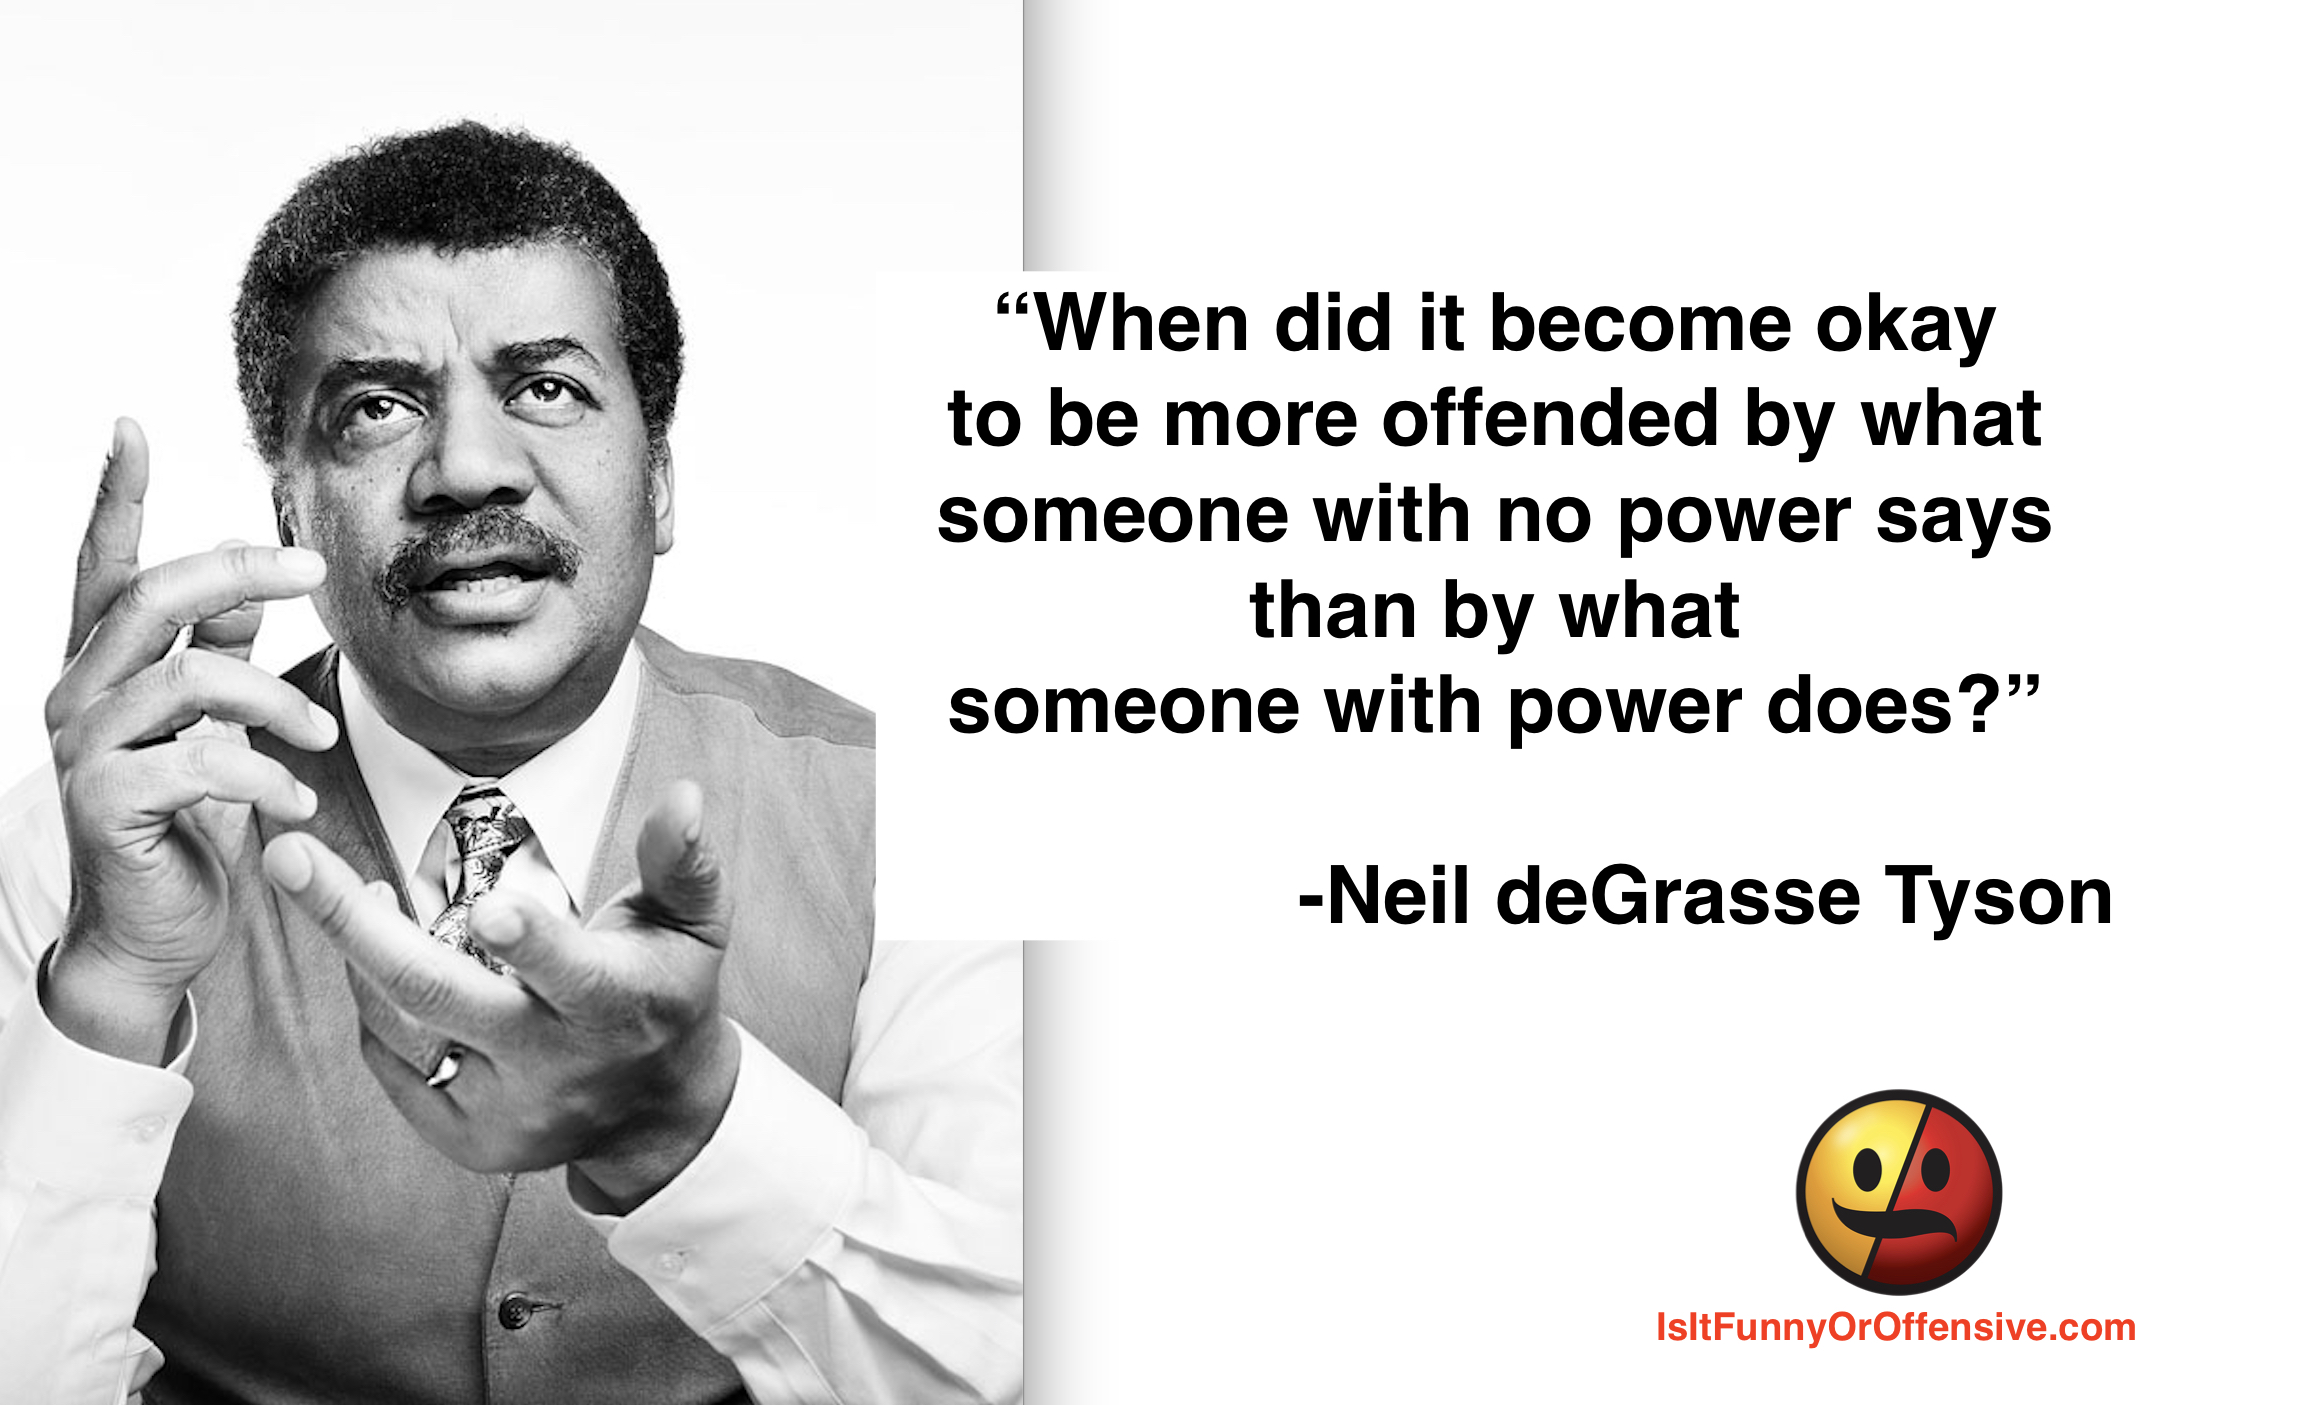 Neil deGrasse Tyson on Power and Being Offended